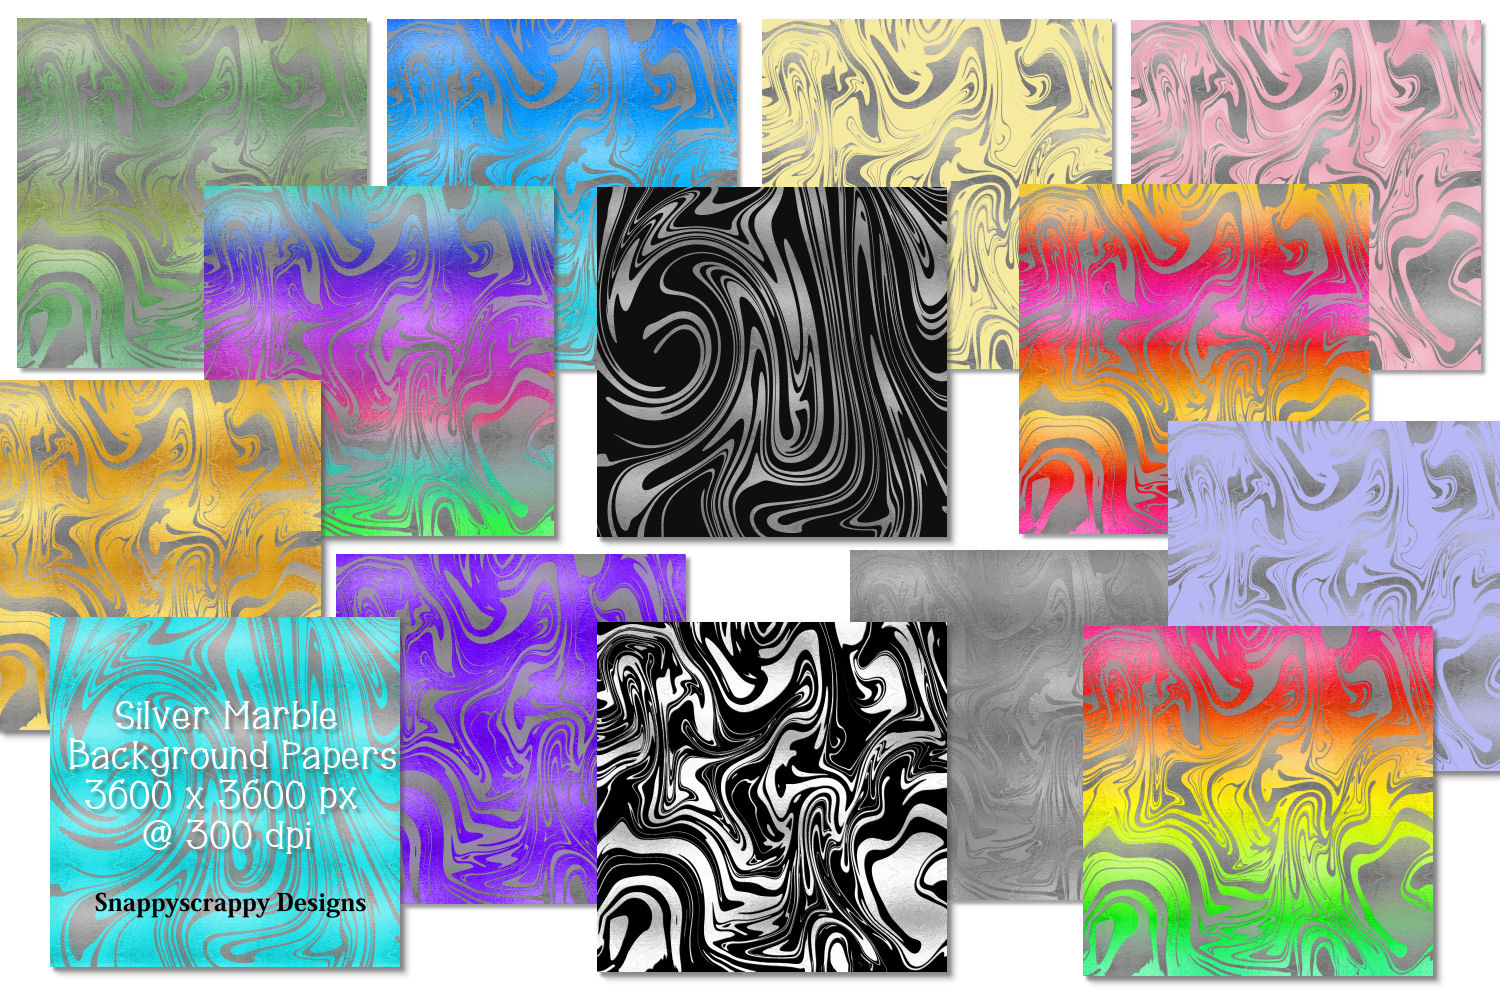 Silver Marble Background Papers example image 1